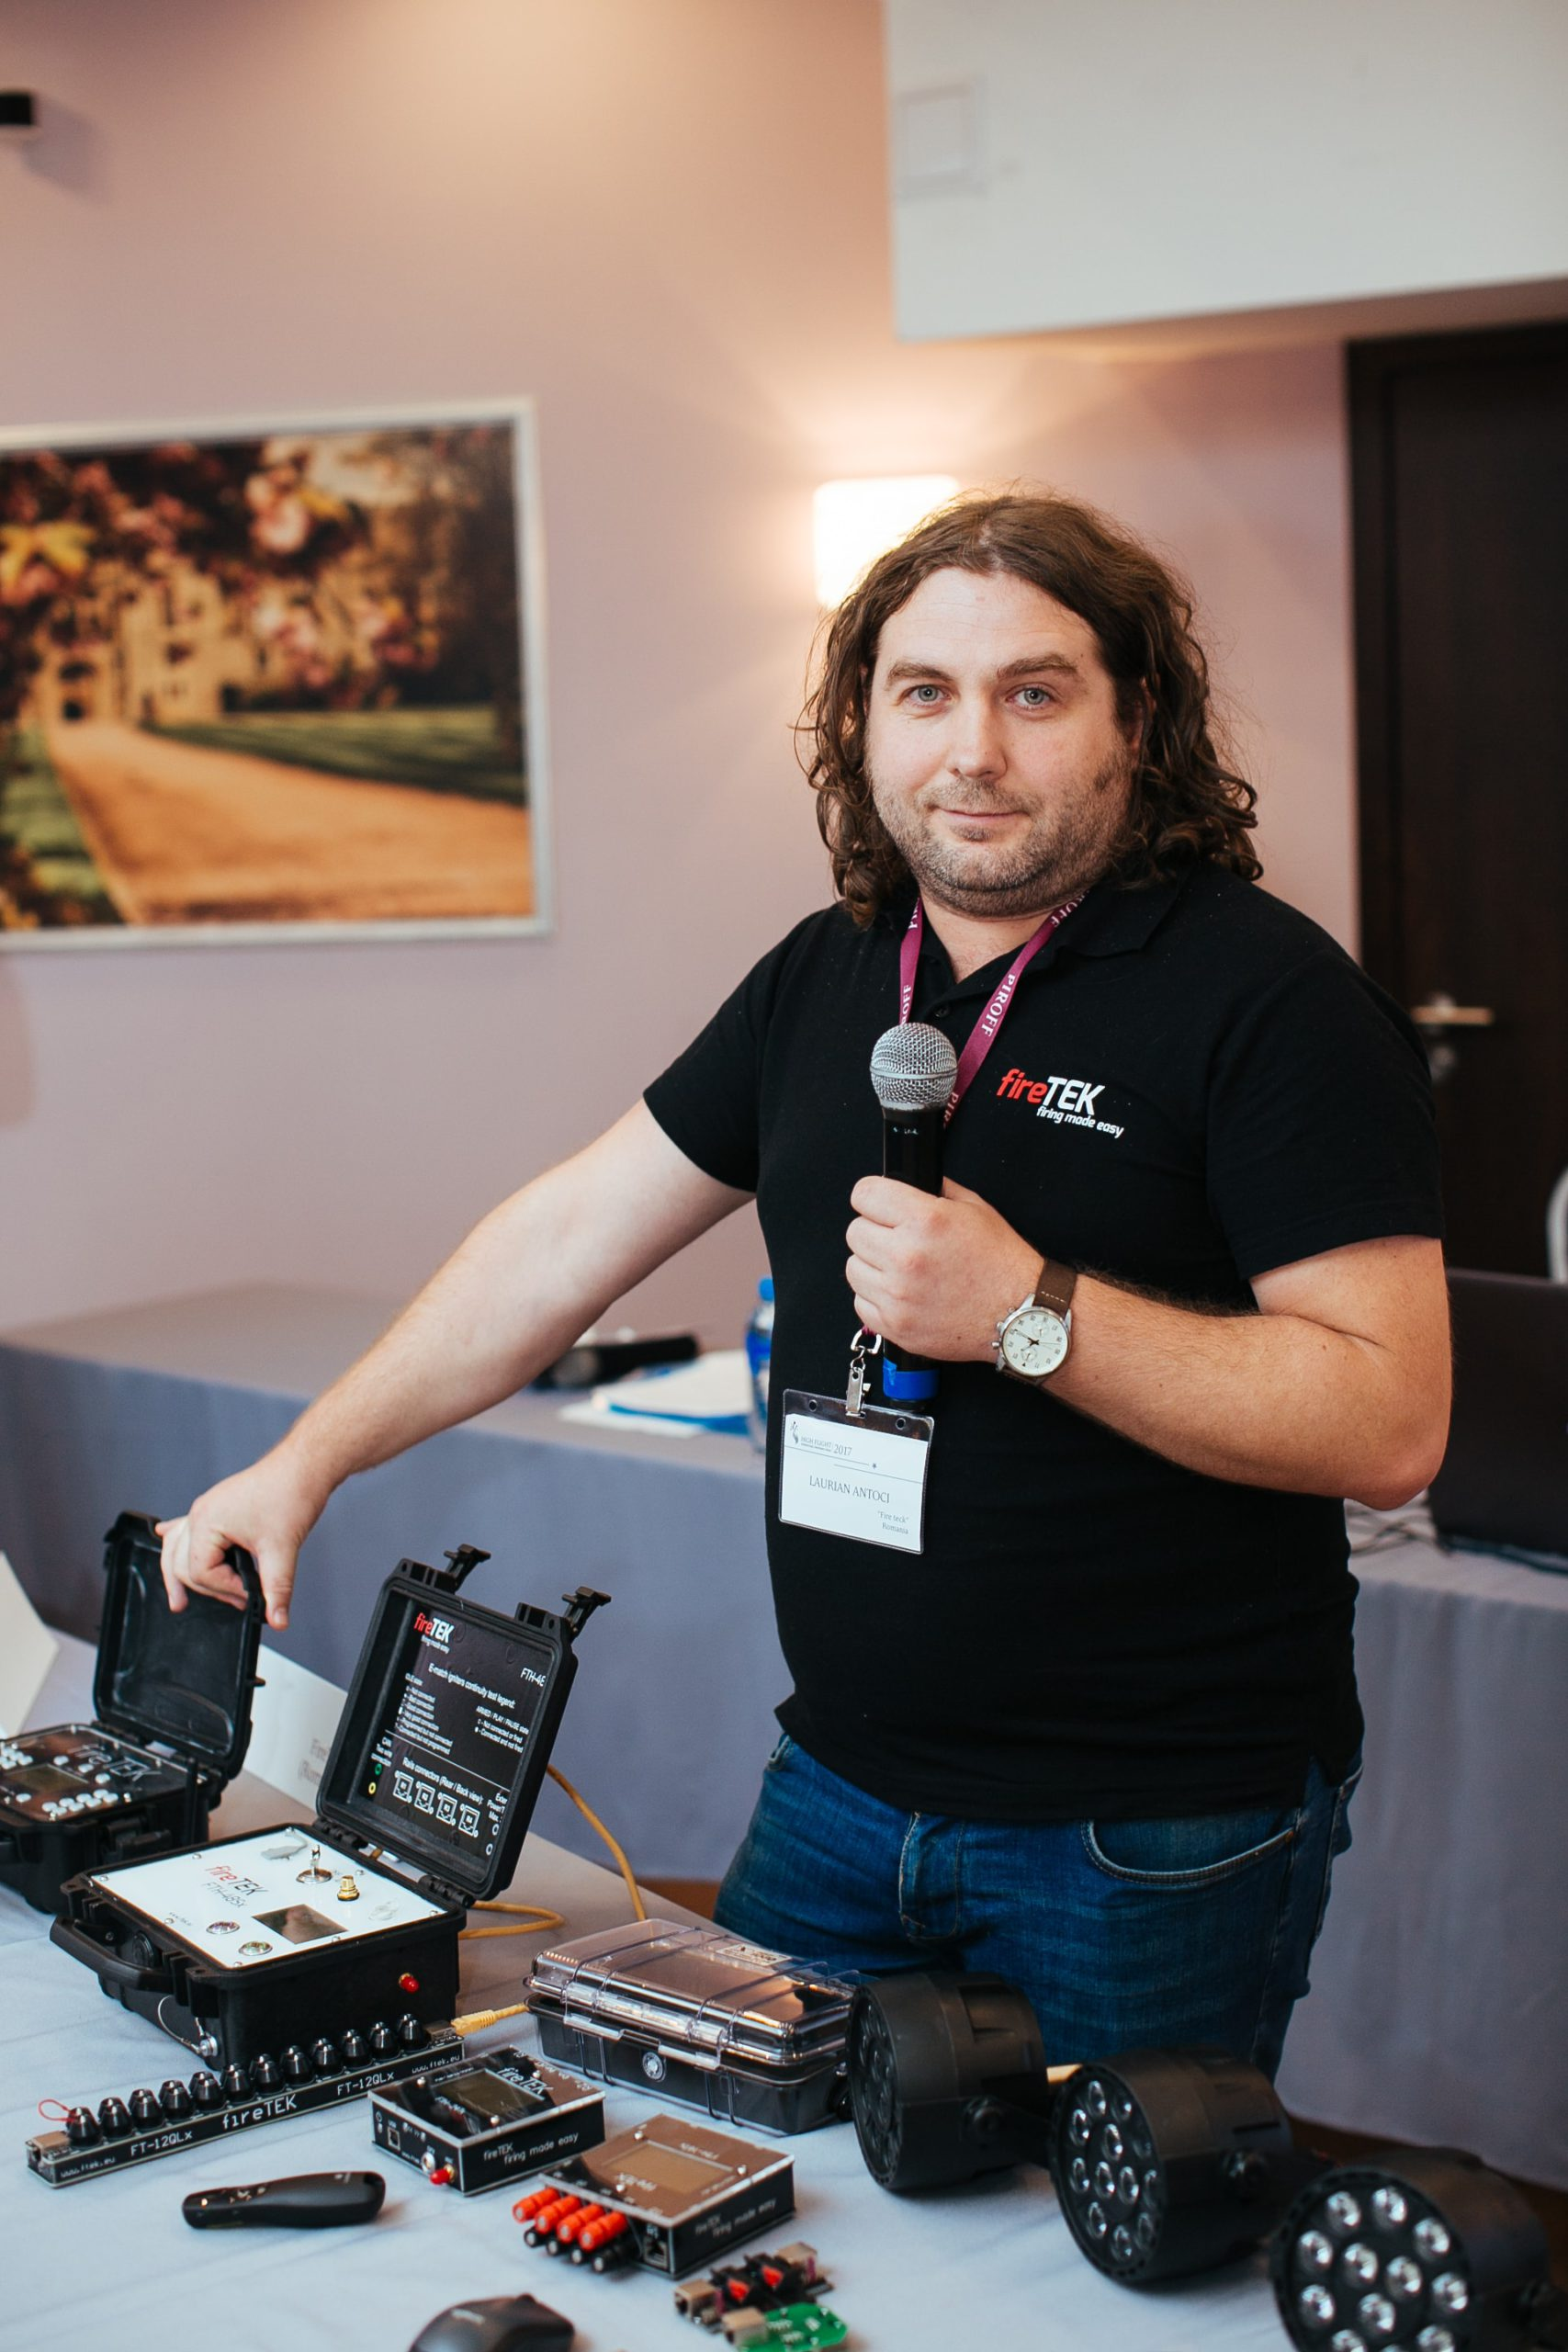 Laurian with FireTek at Russia High Forums conference